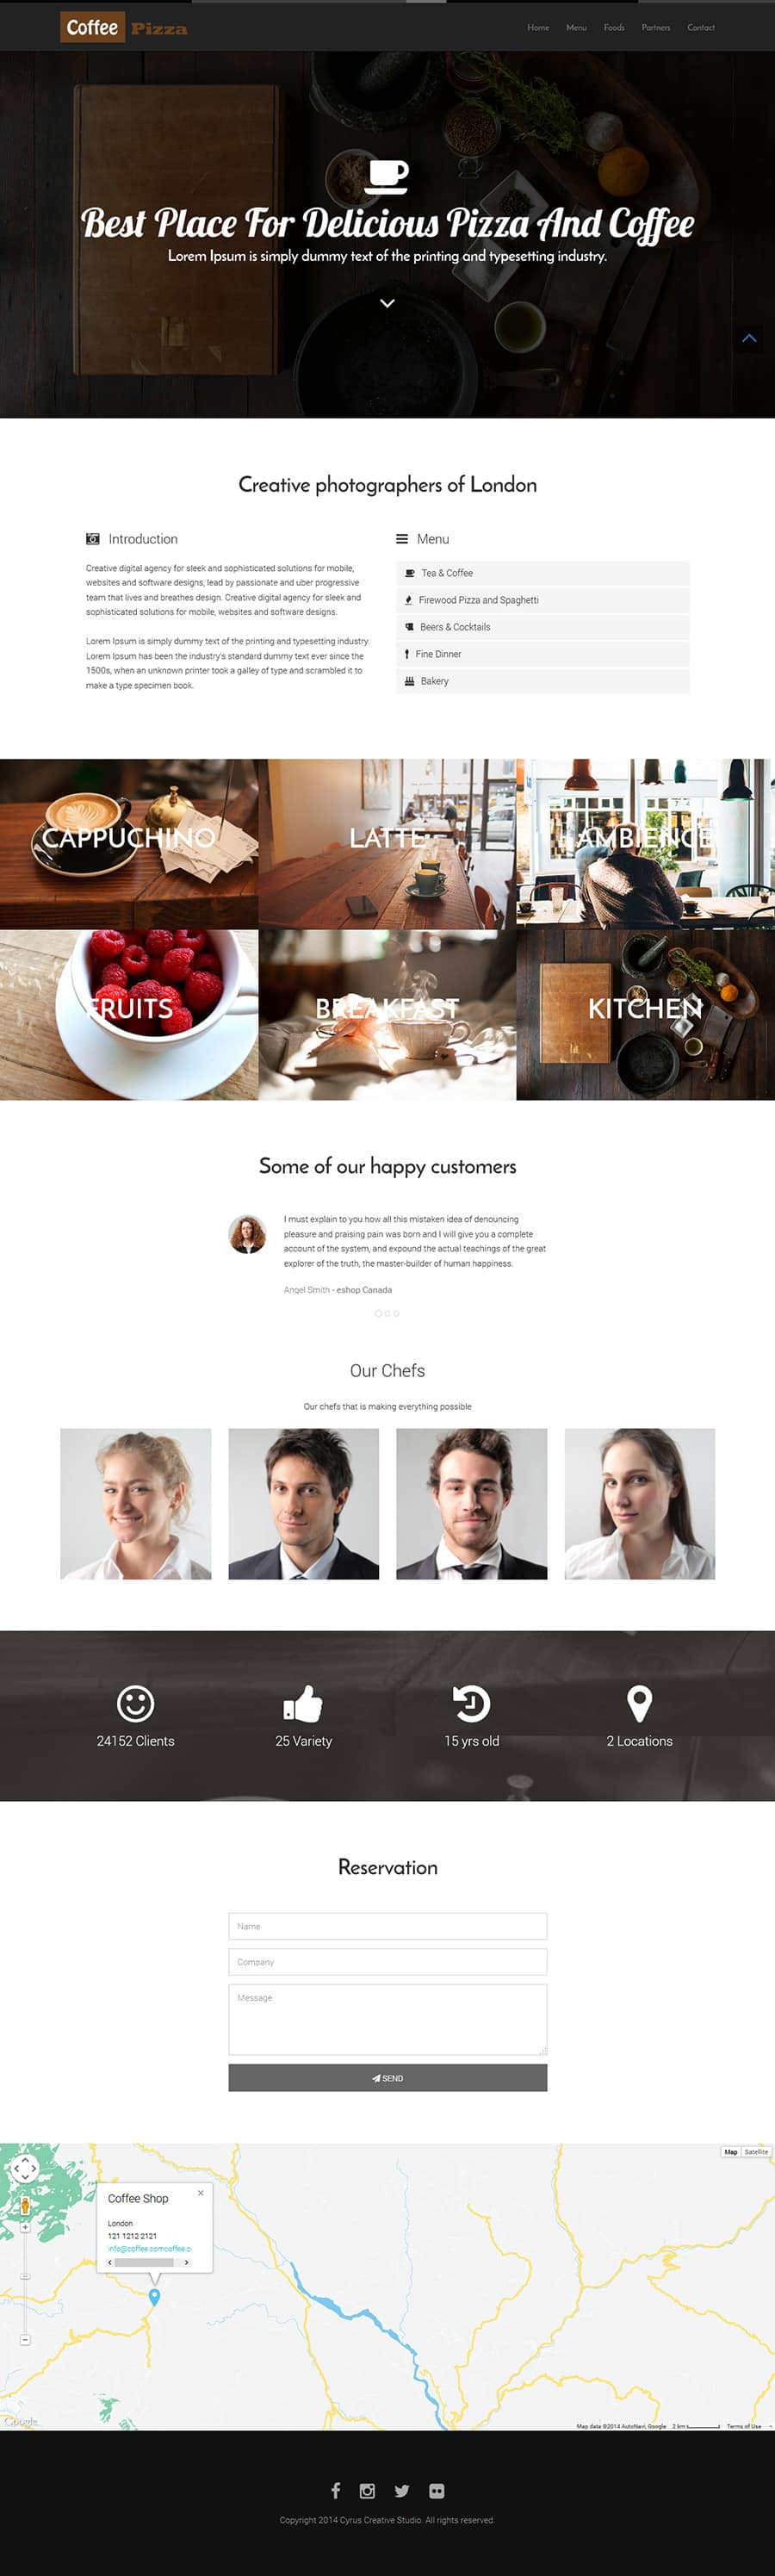 getbootstrap com templates - restaurant template the bootstrap themes